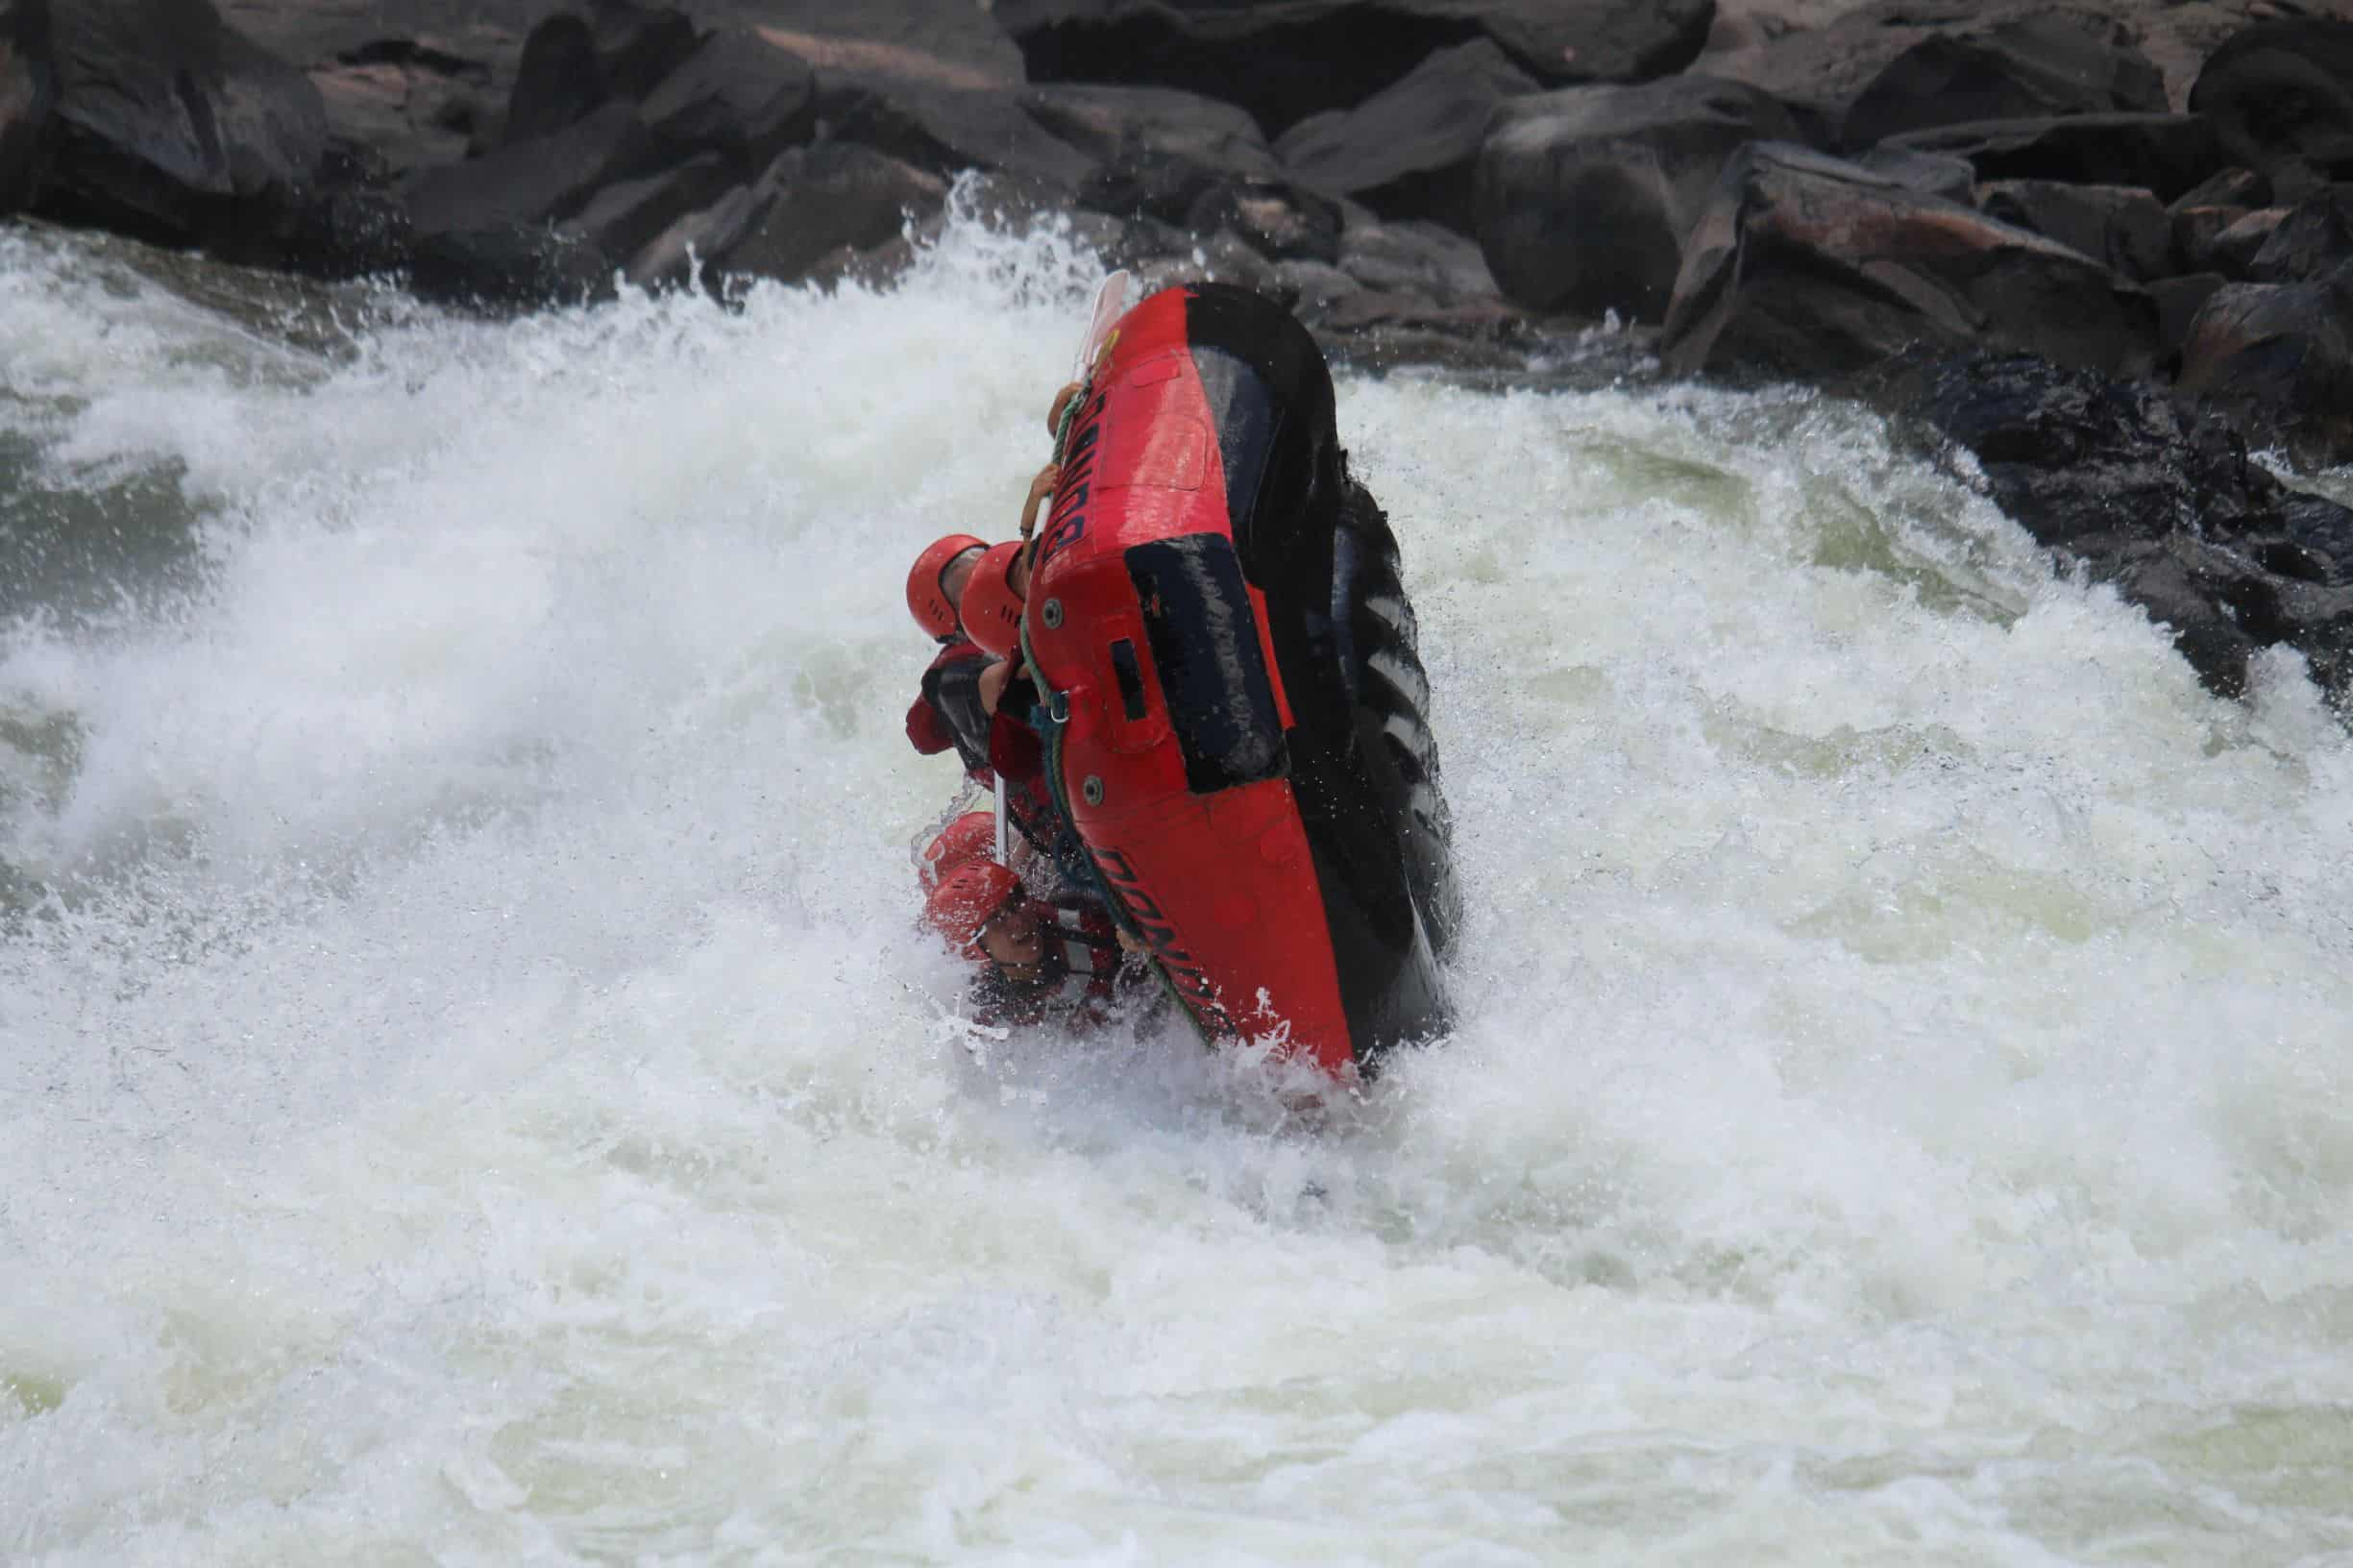 The rapid in which we flipped our boat